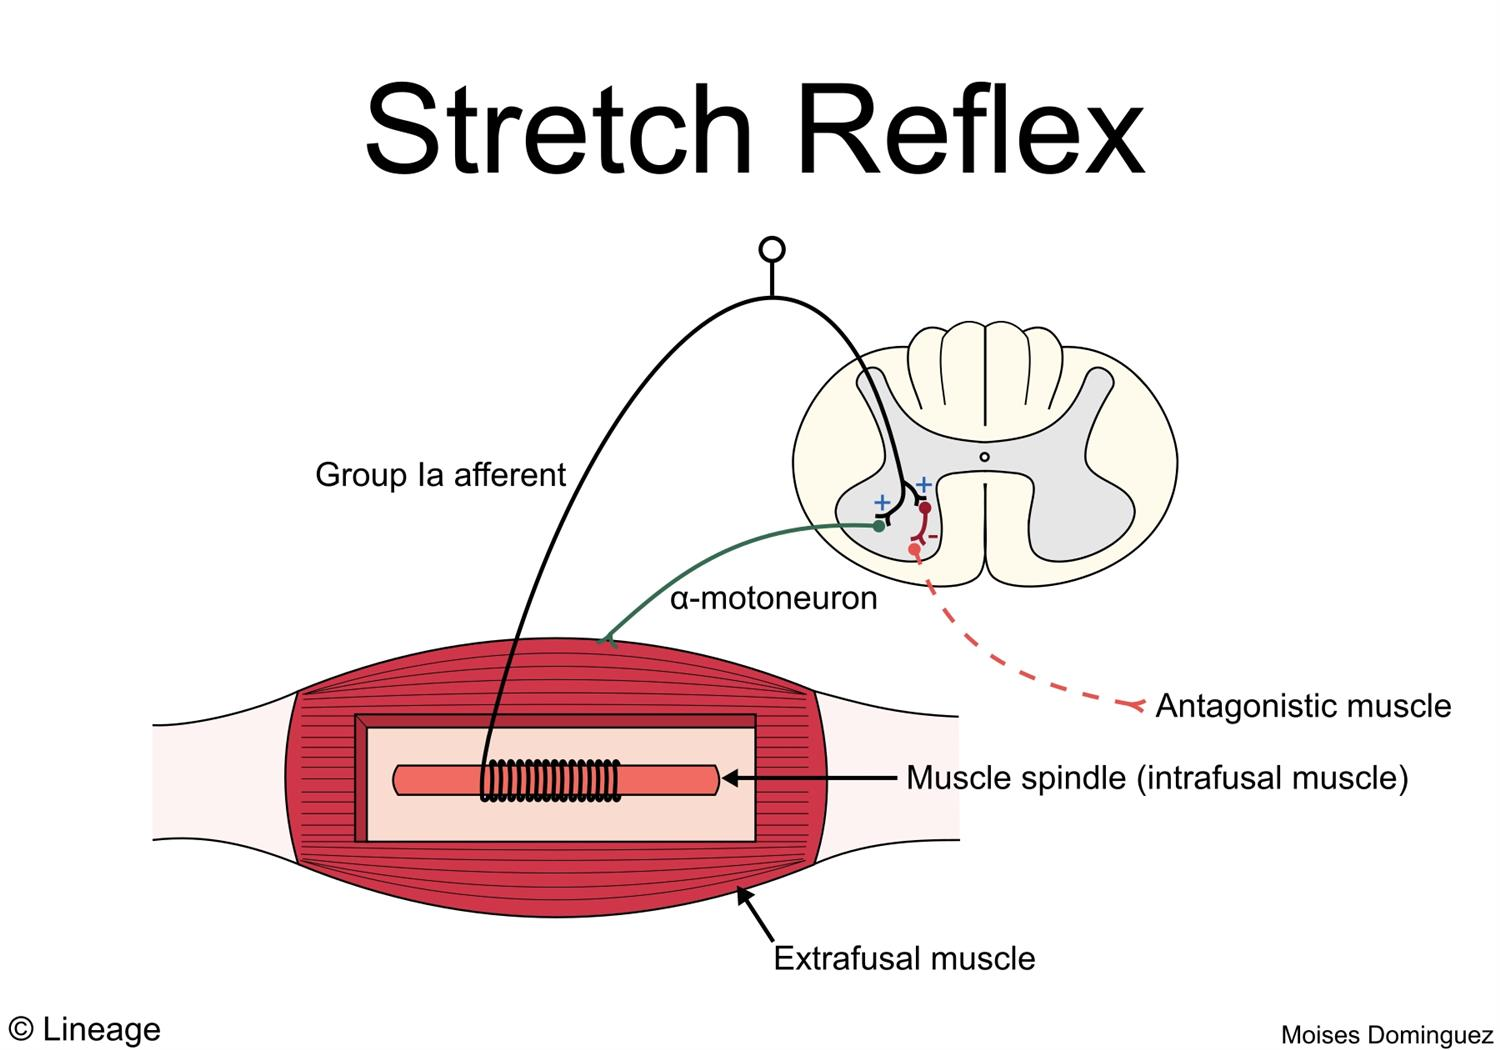 Muscle spindles golgi tendon organs neurology medbullets step 1 muscle spindles golgi tendon organs pooptronica